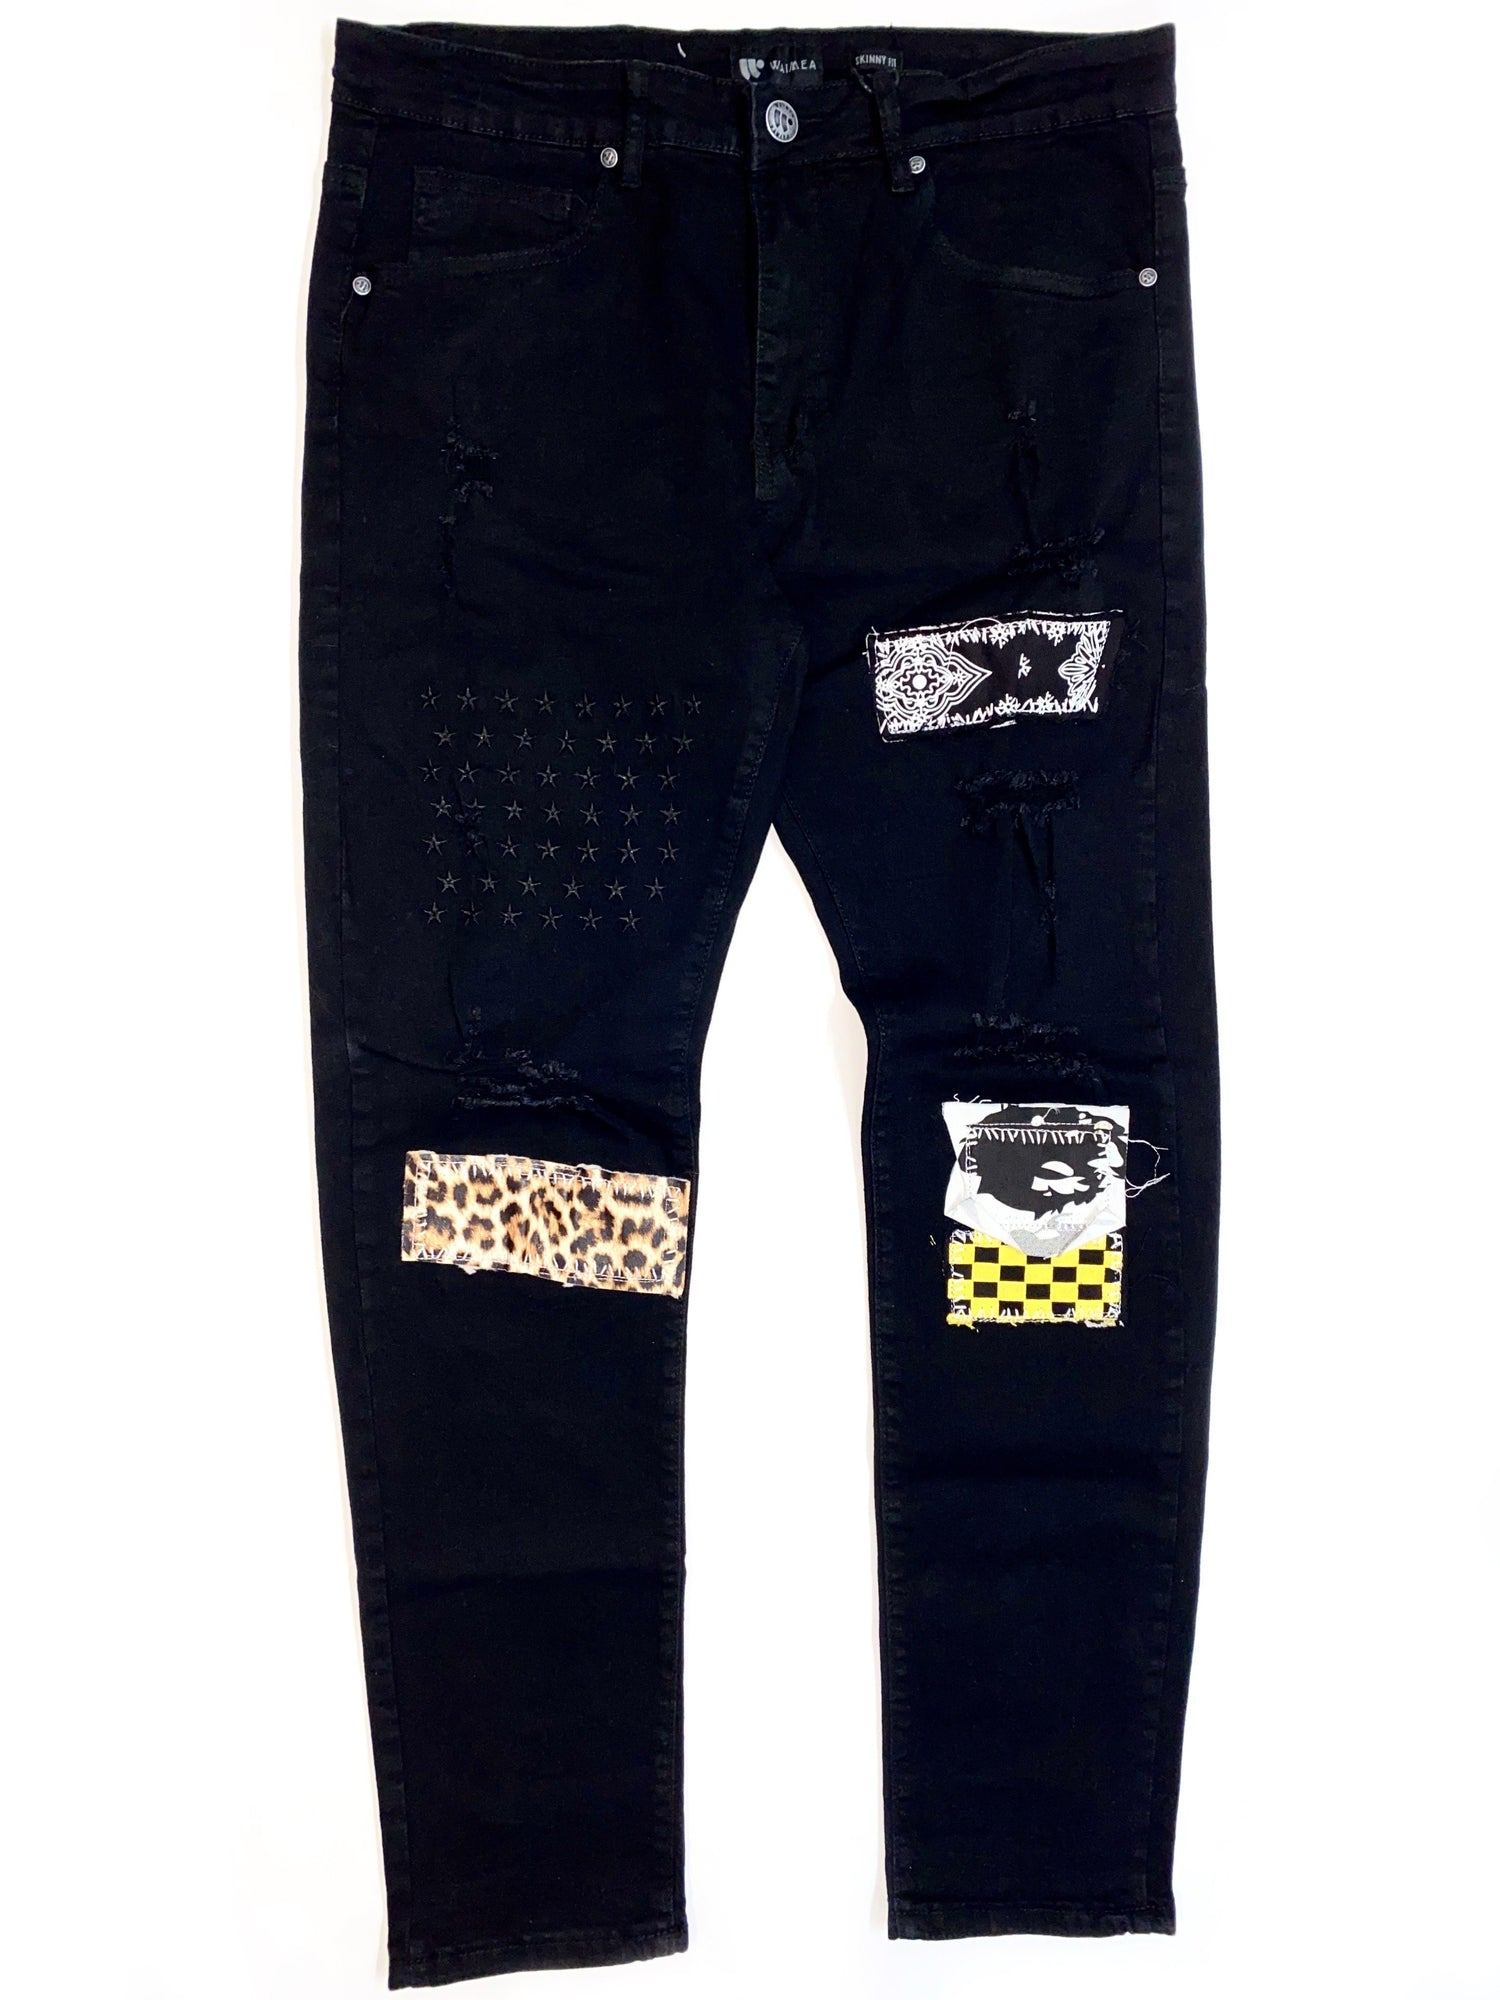 Waimea Jeans - Black With Patches - M4765D